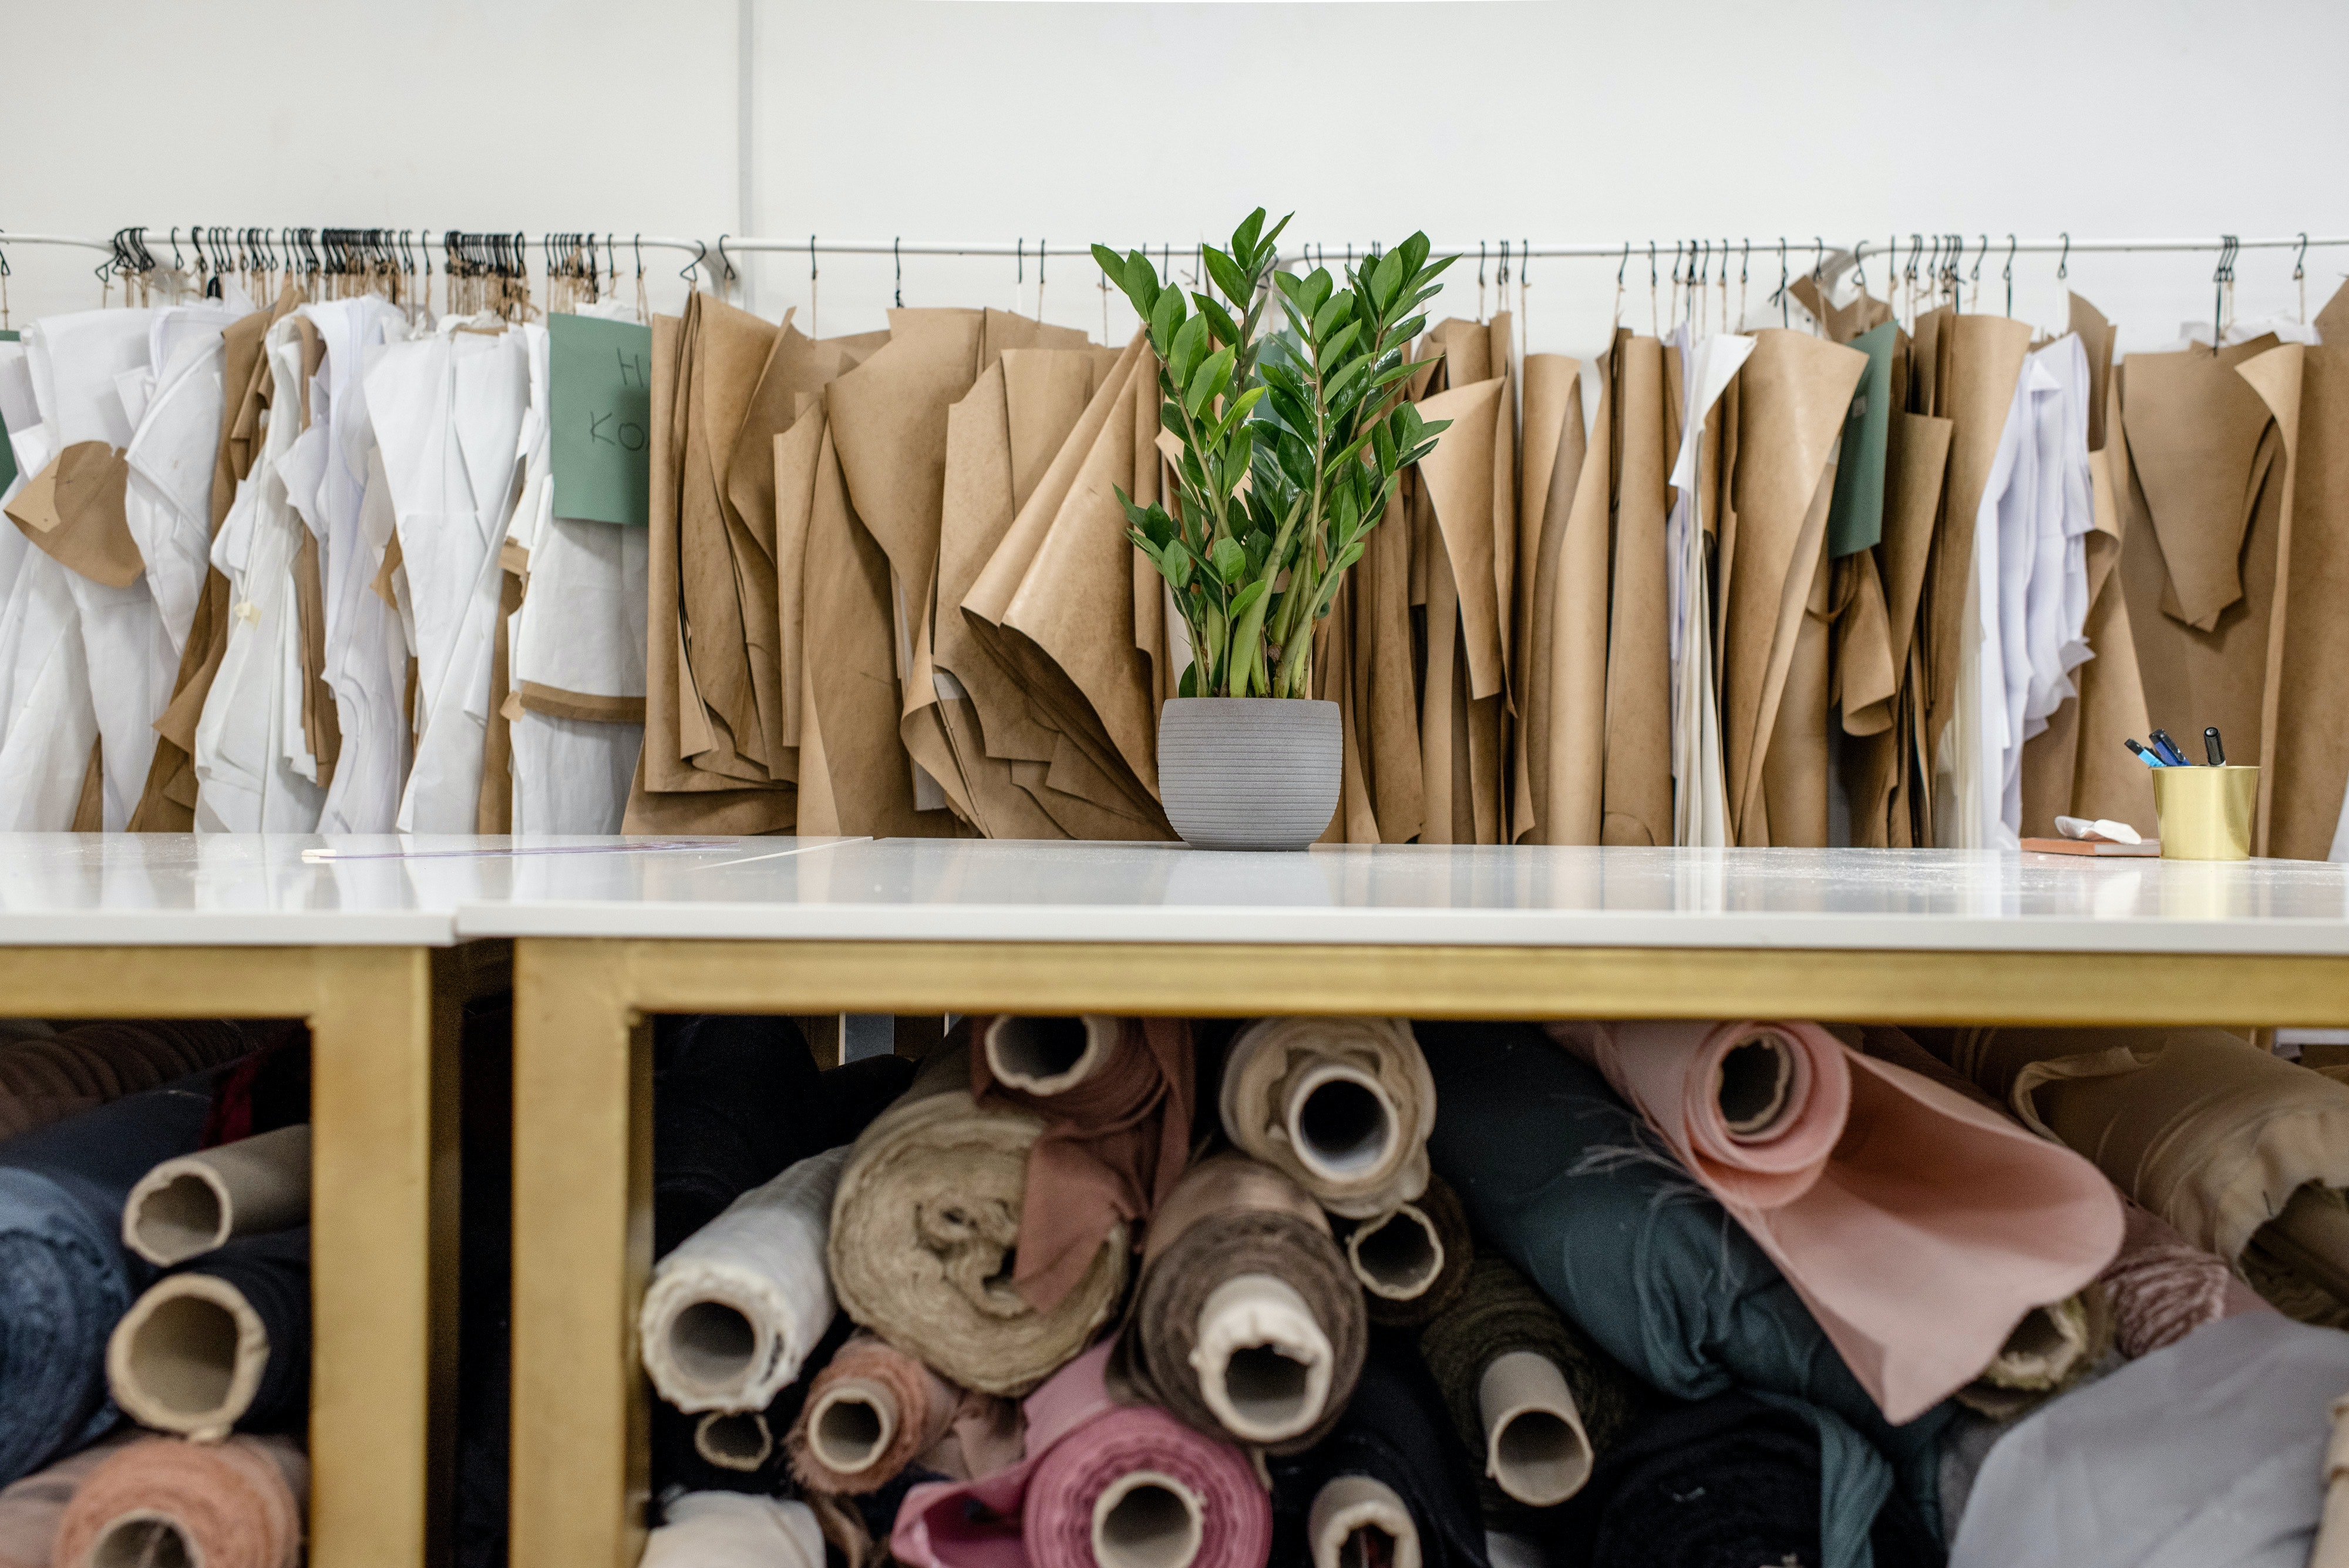 The Frontline of Fashion: Imagining an Equitable Future for Retail Employees